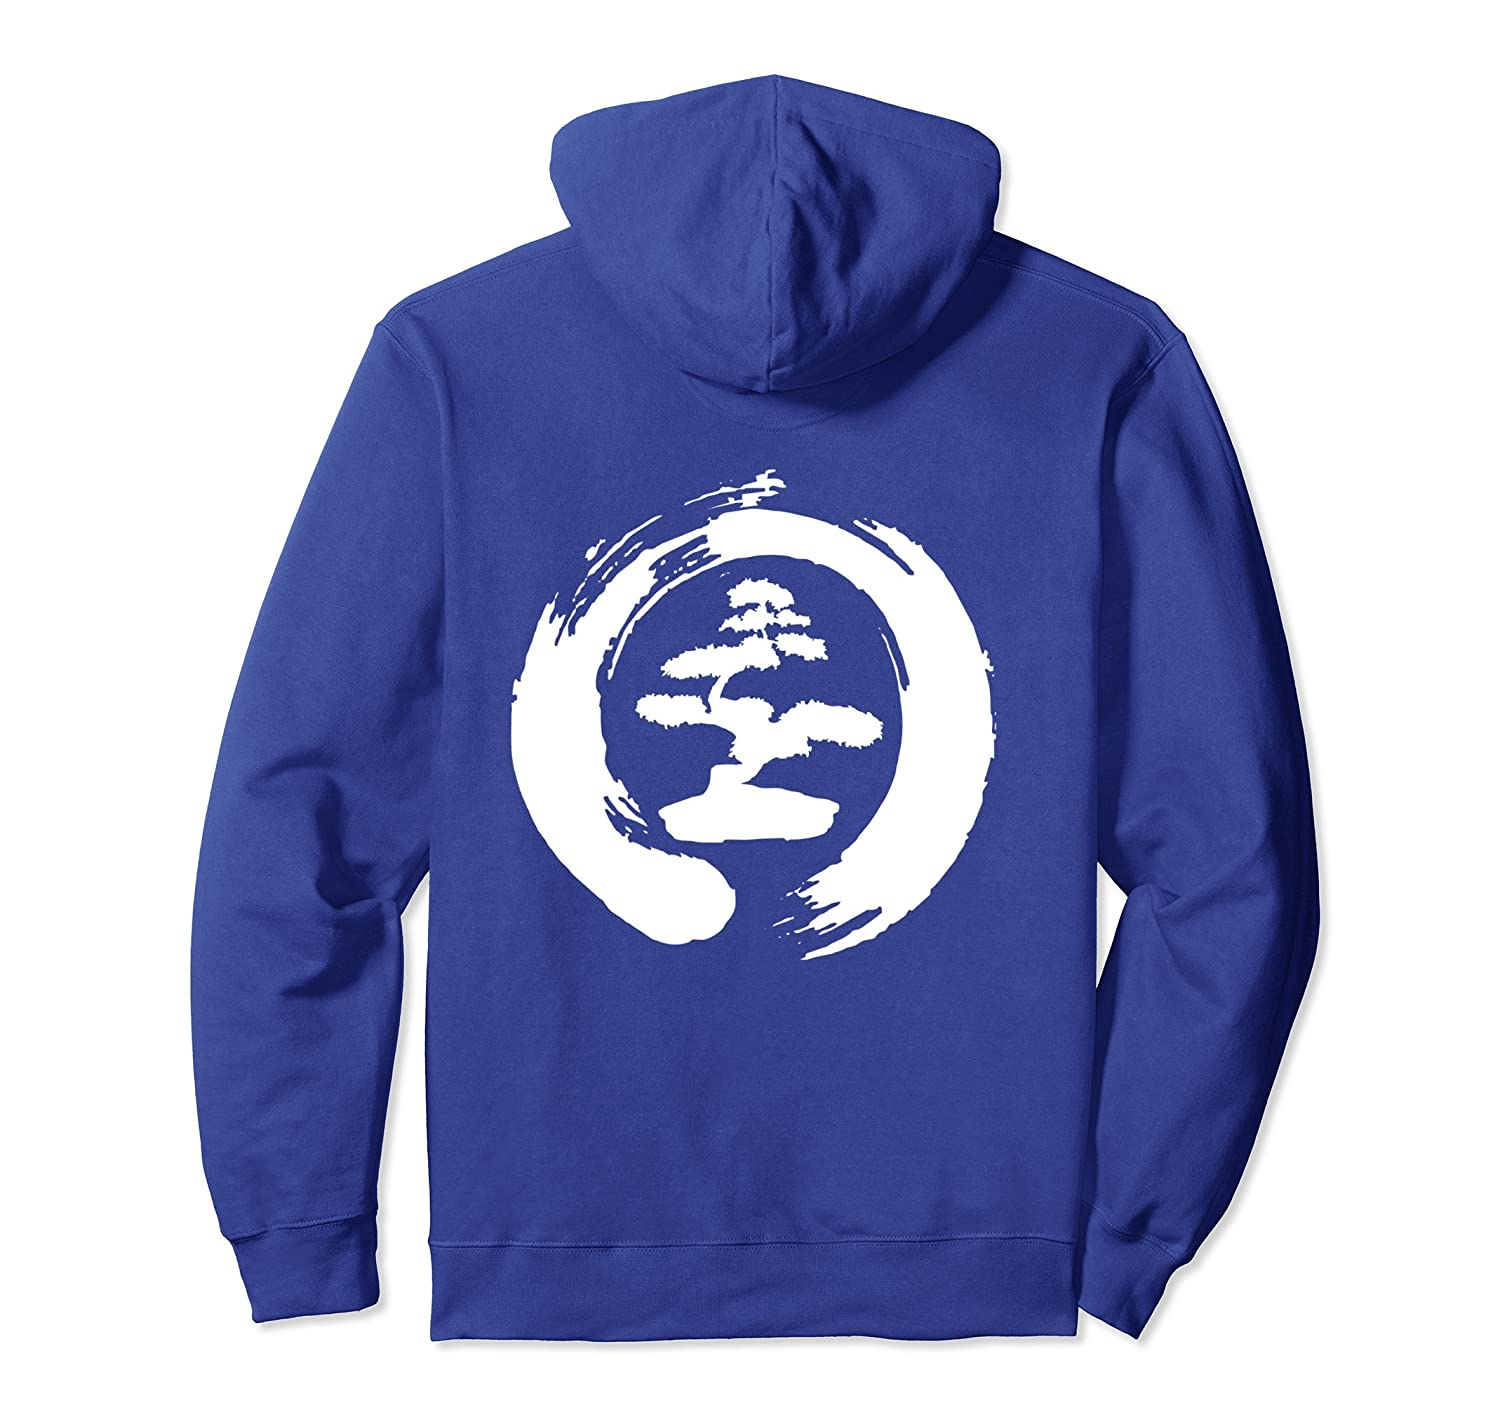 Cool Bonsai Tree Pullover Hoodie Gift for Yoga Lovers-ah my shirt one gift